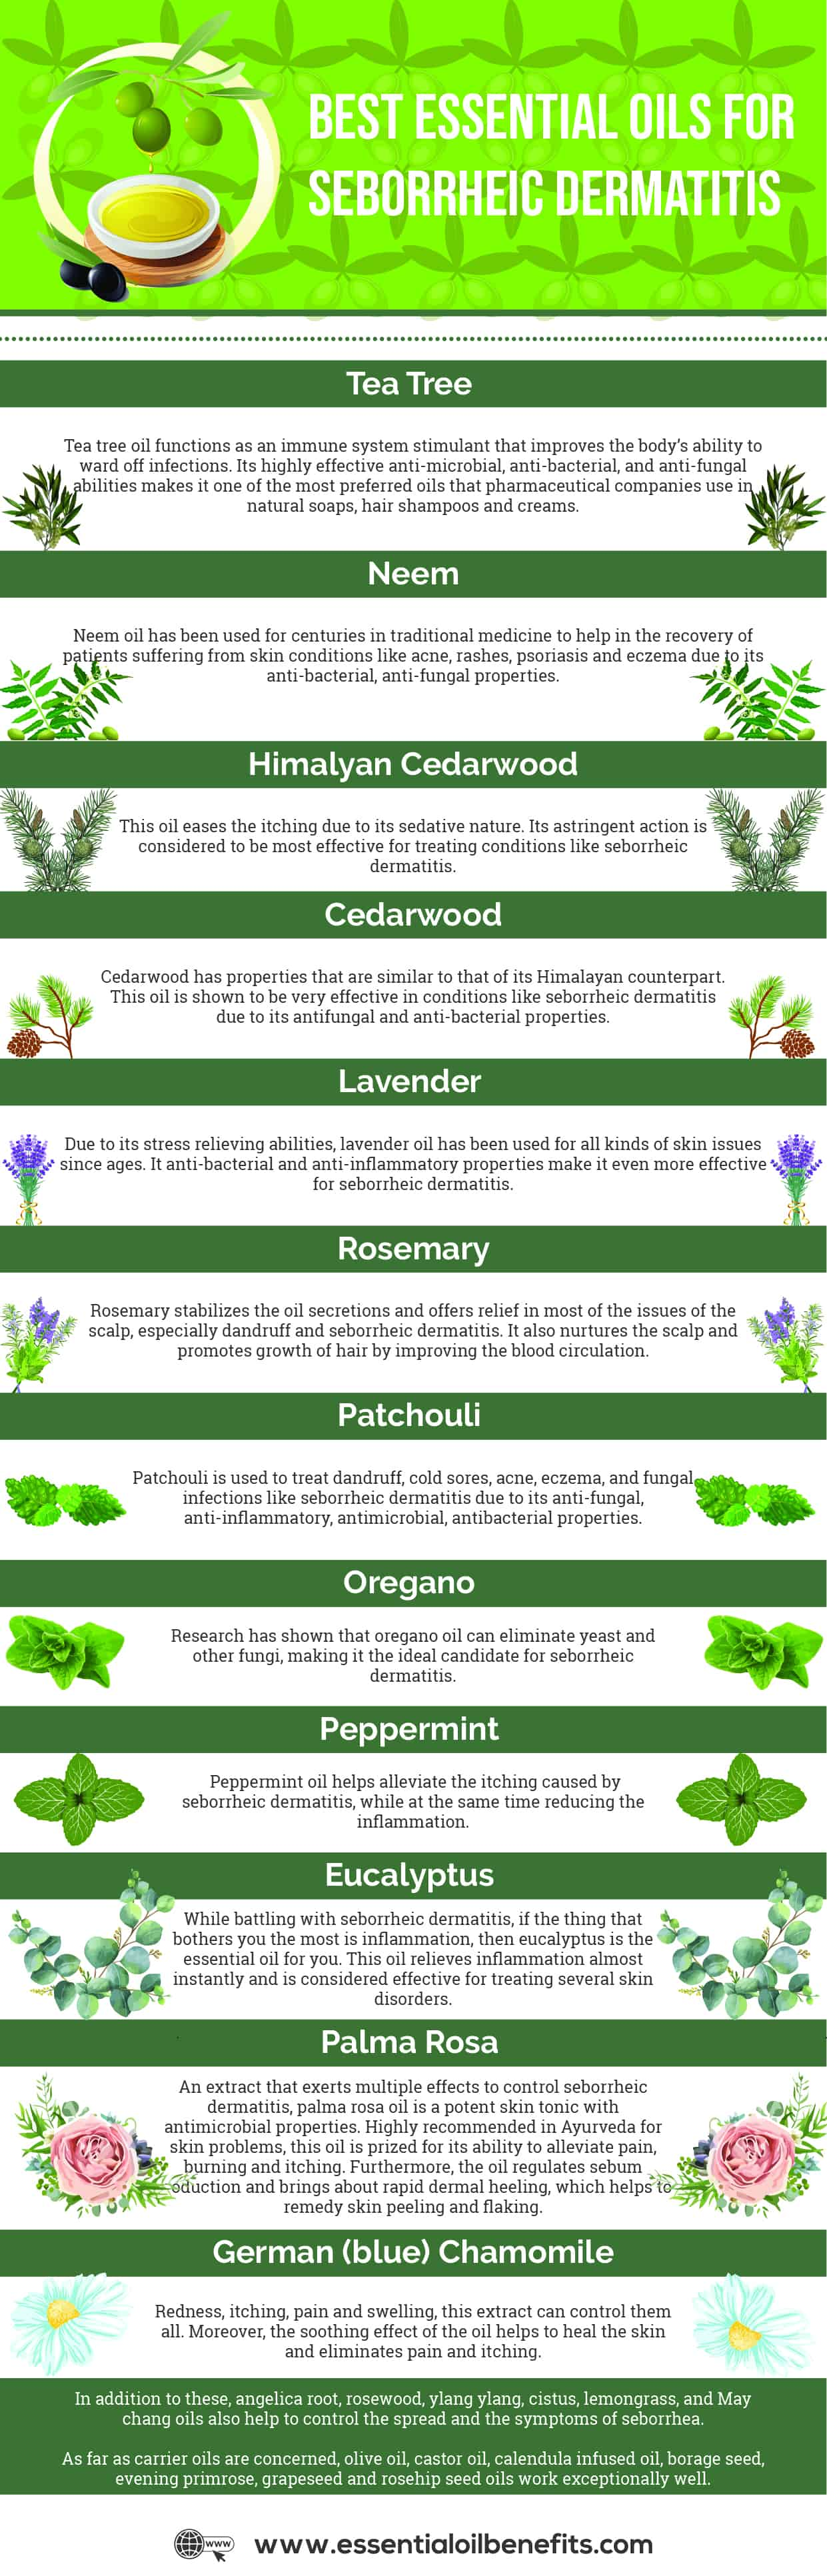 12 Essential Oils For Seborrheic Dermatitis Essential Oil Benefits